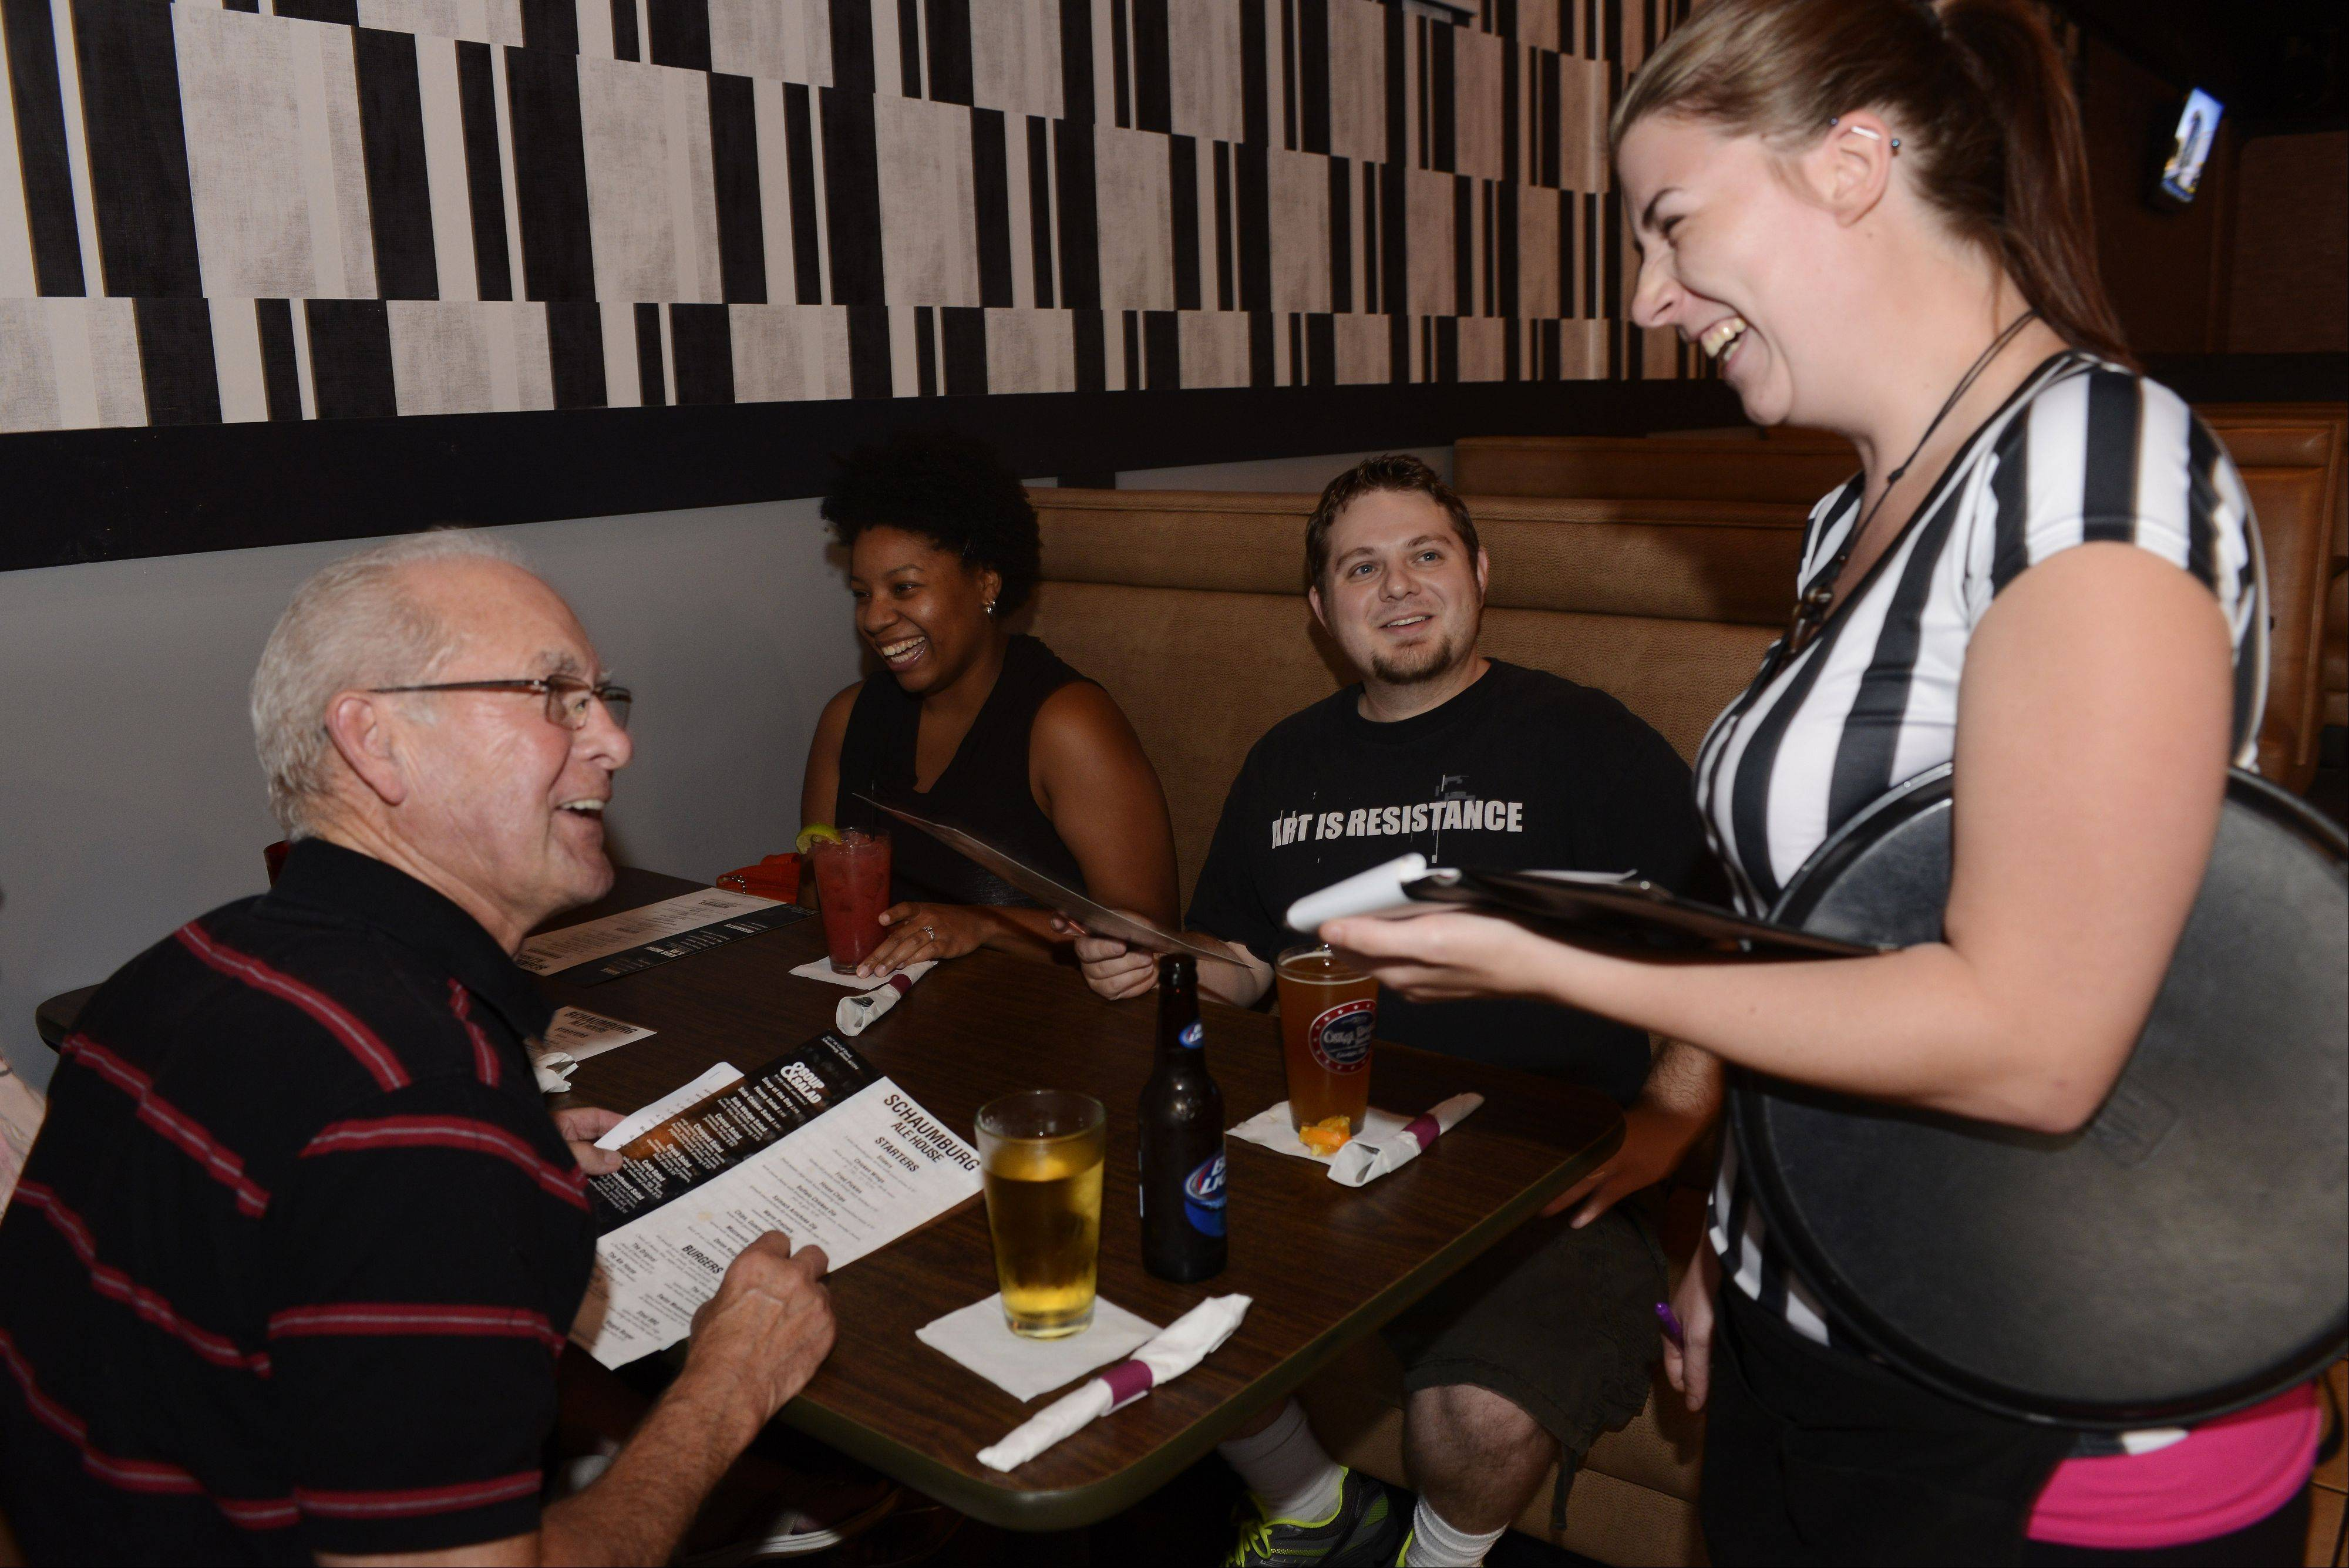 Server Traci Johnson takes an order from guests Russ Clark, left, of Peoria and Cherry and Mitch Clark of Streamwood at Schaumburg Ale House.